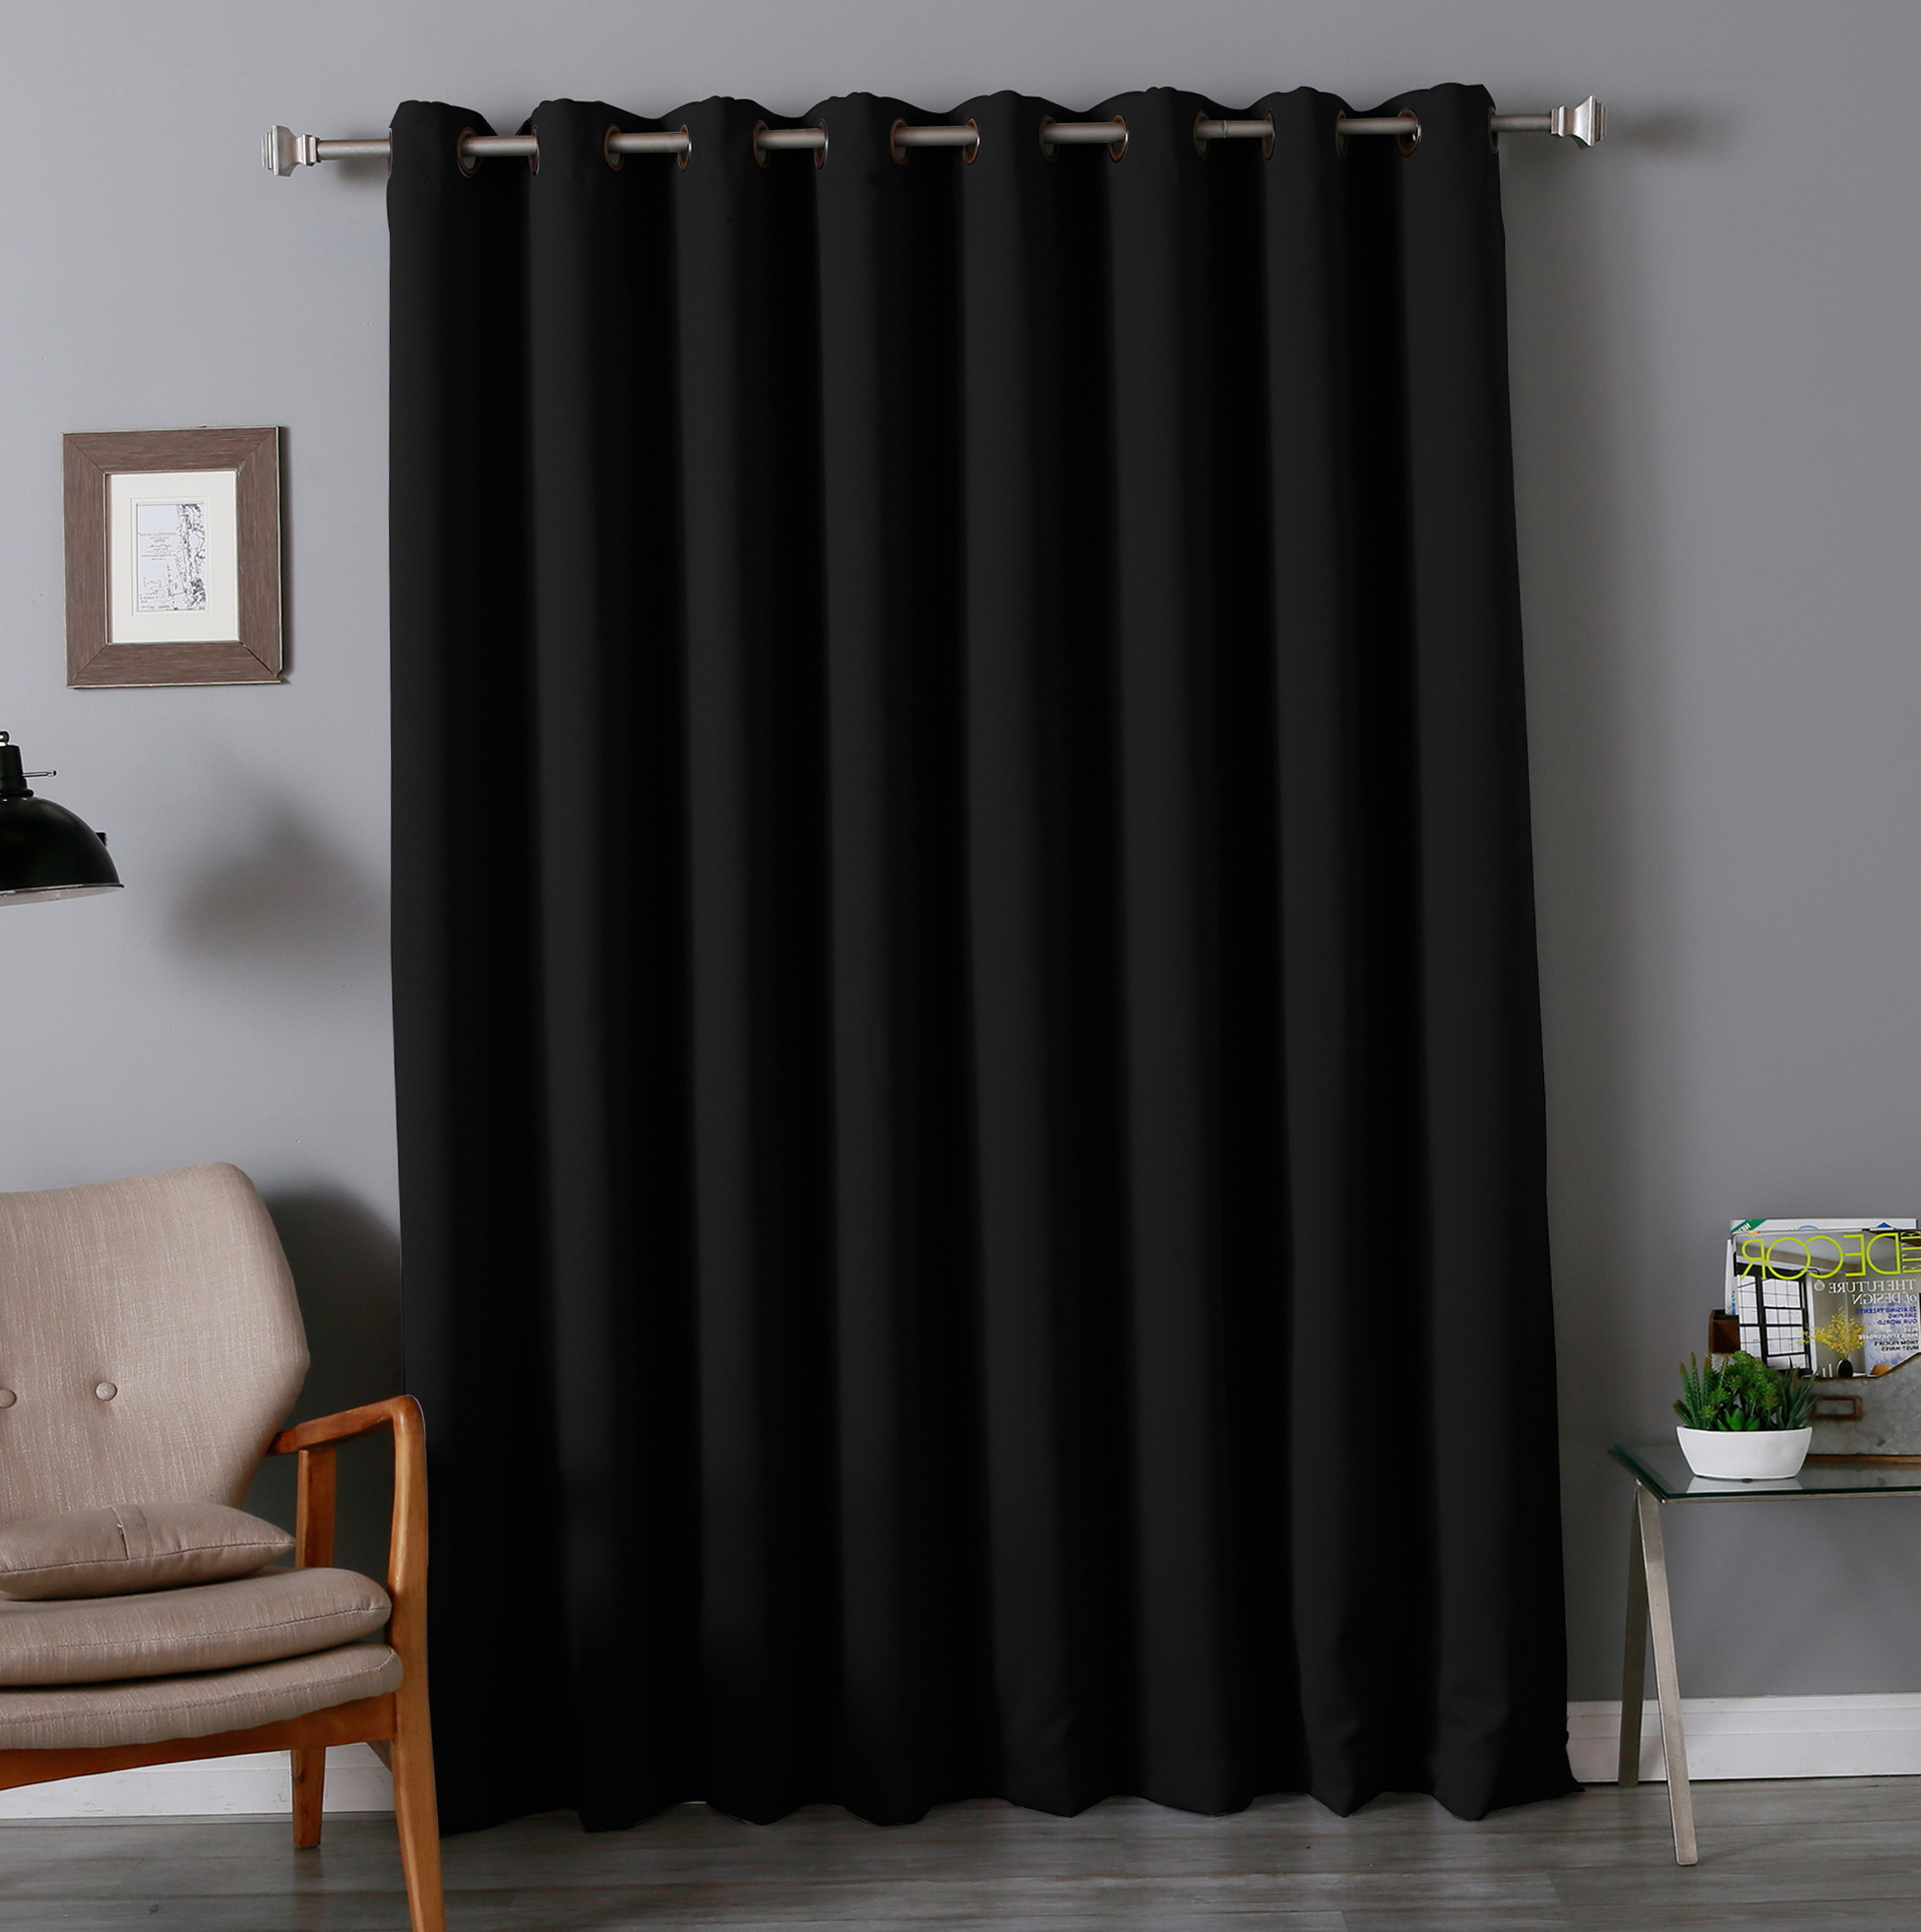 standard curtain lengths inches home design ideas